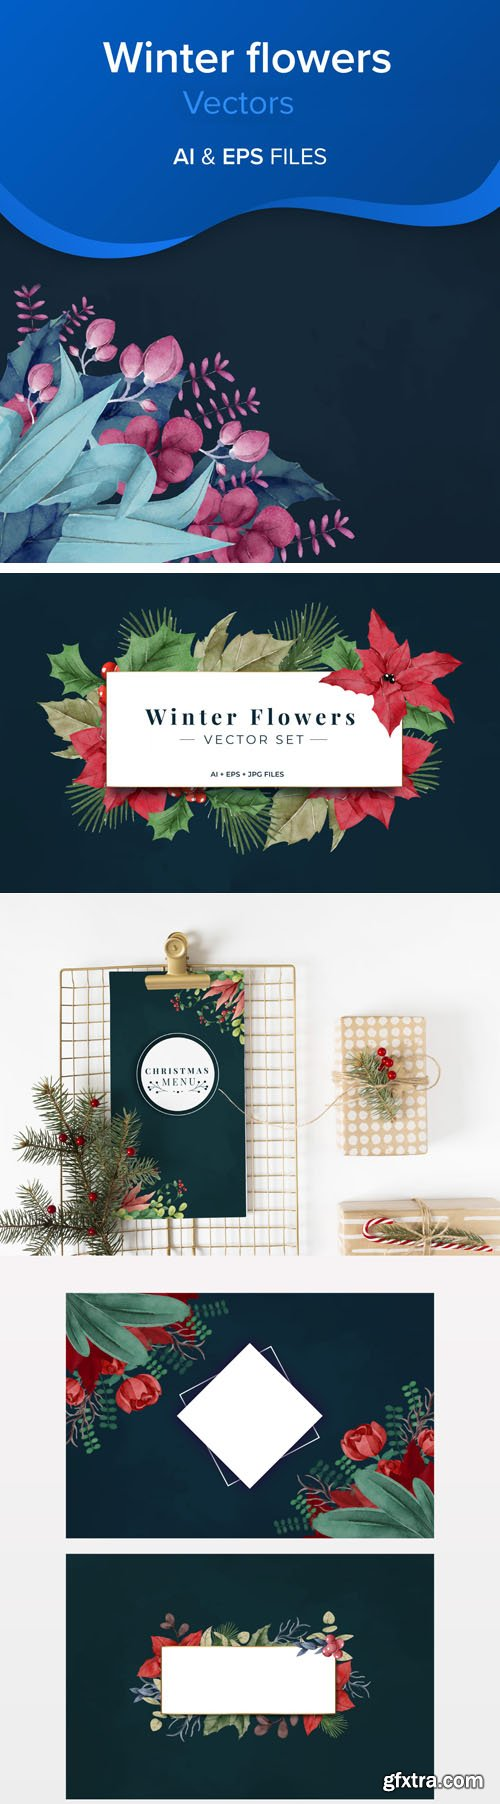 Decorative Winter Flowers Vector Set Collection